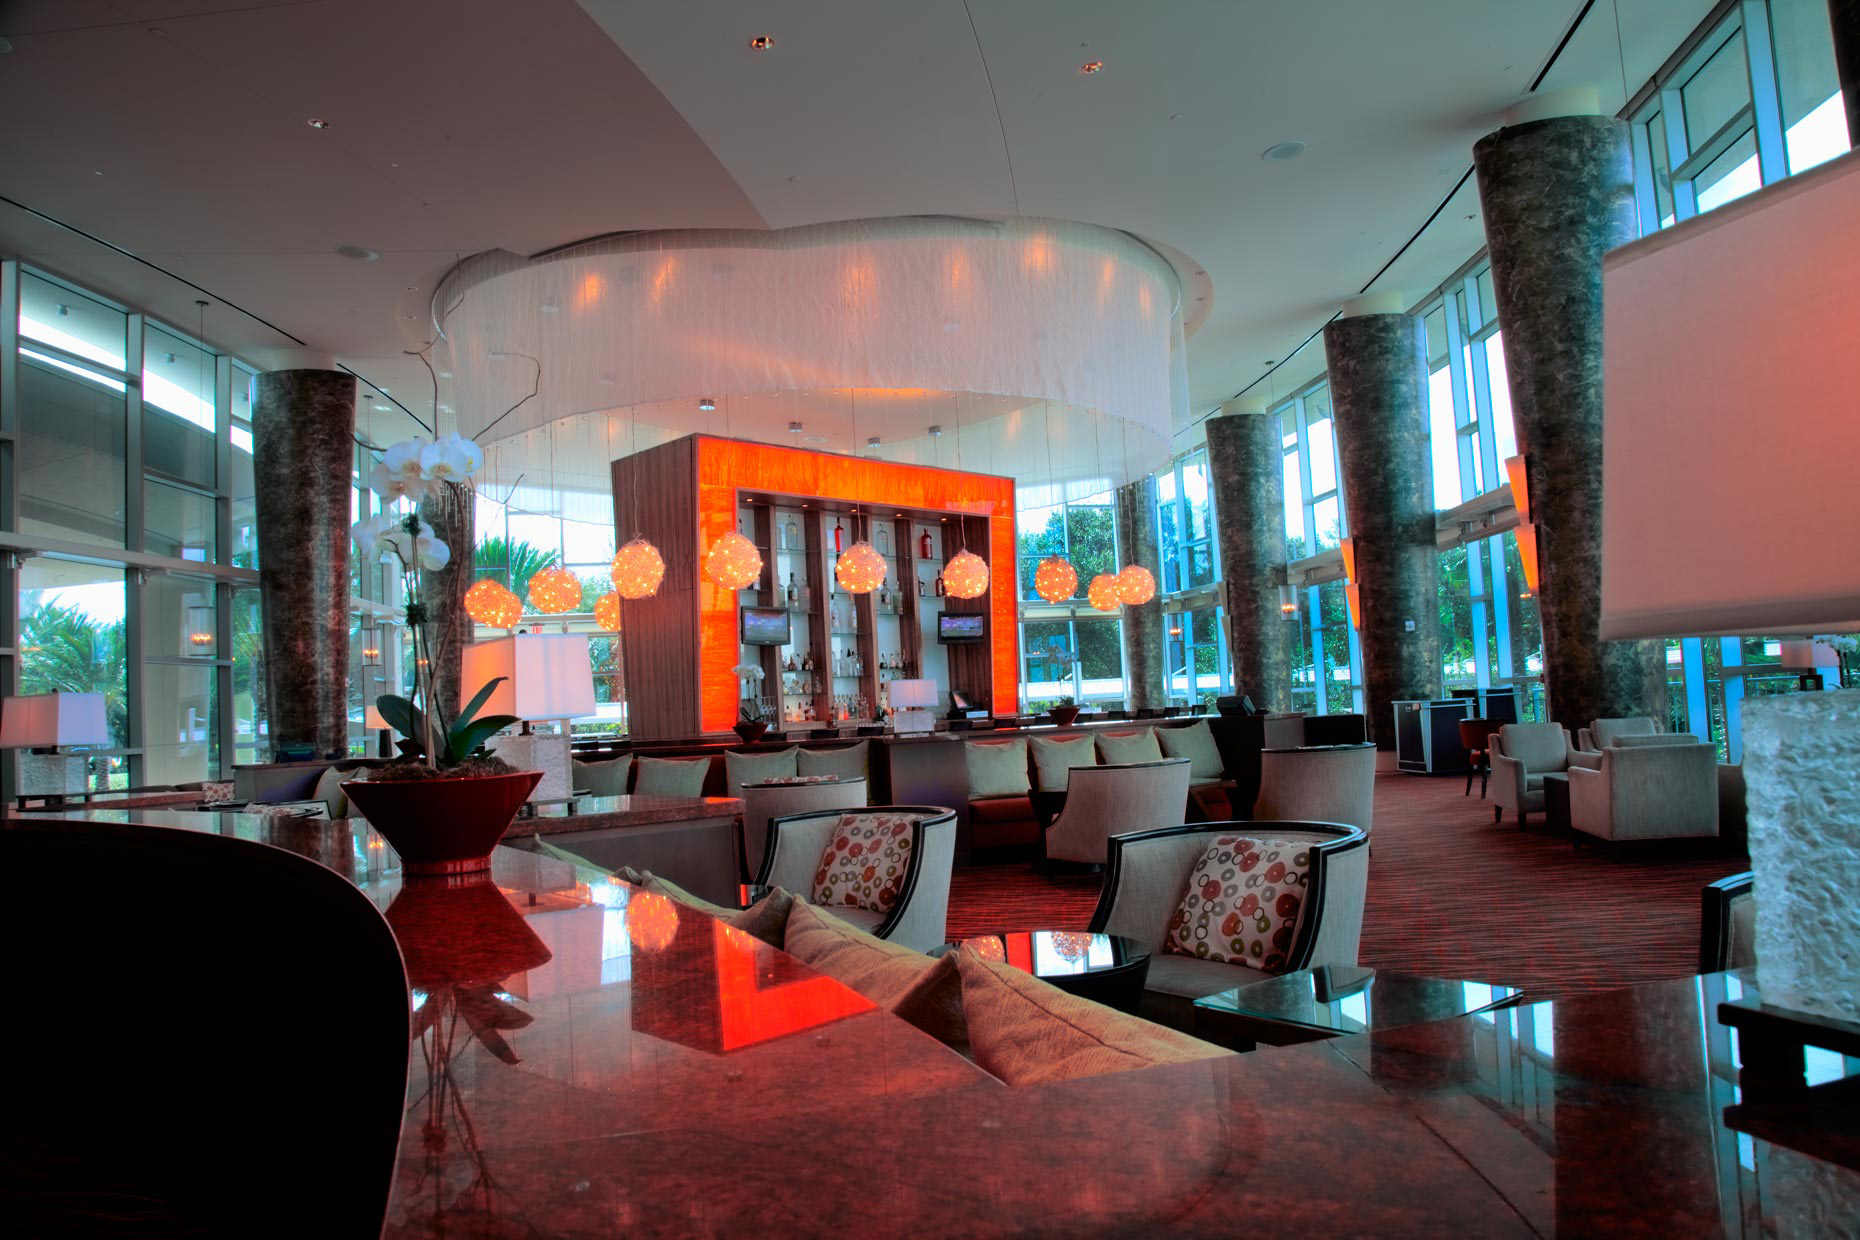 Hyatt Hotel Rocks Bar | Hotel & Resort Photography